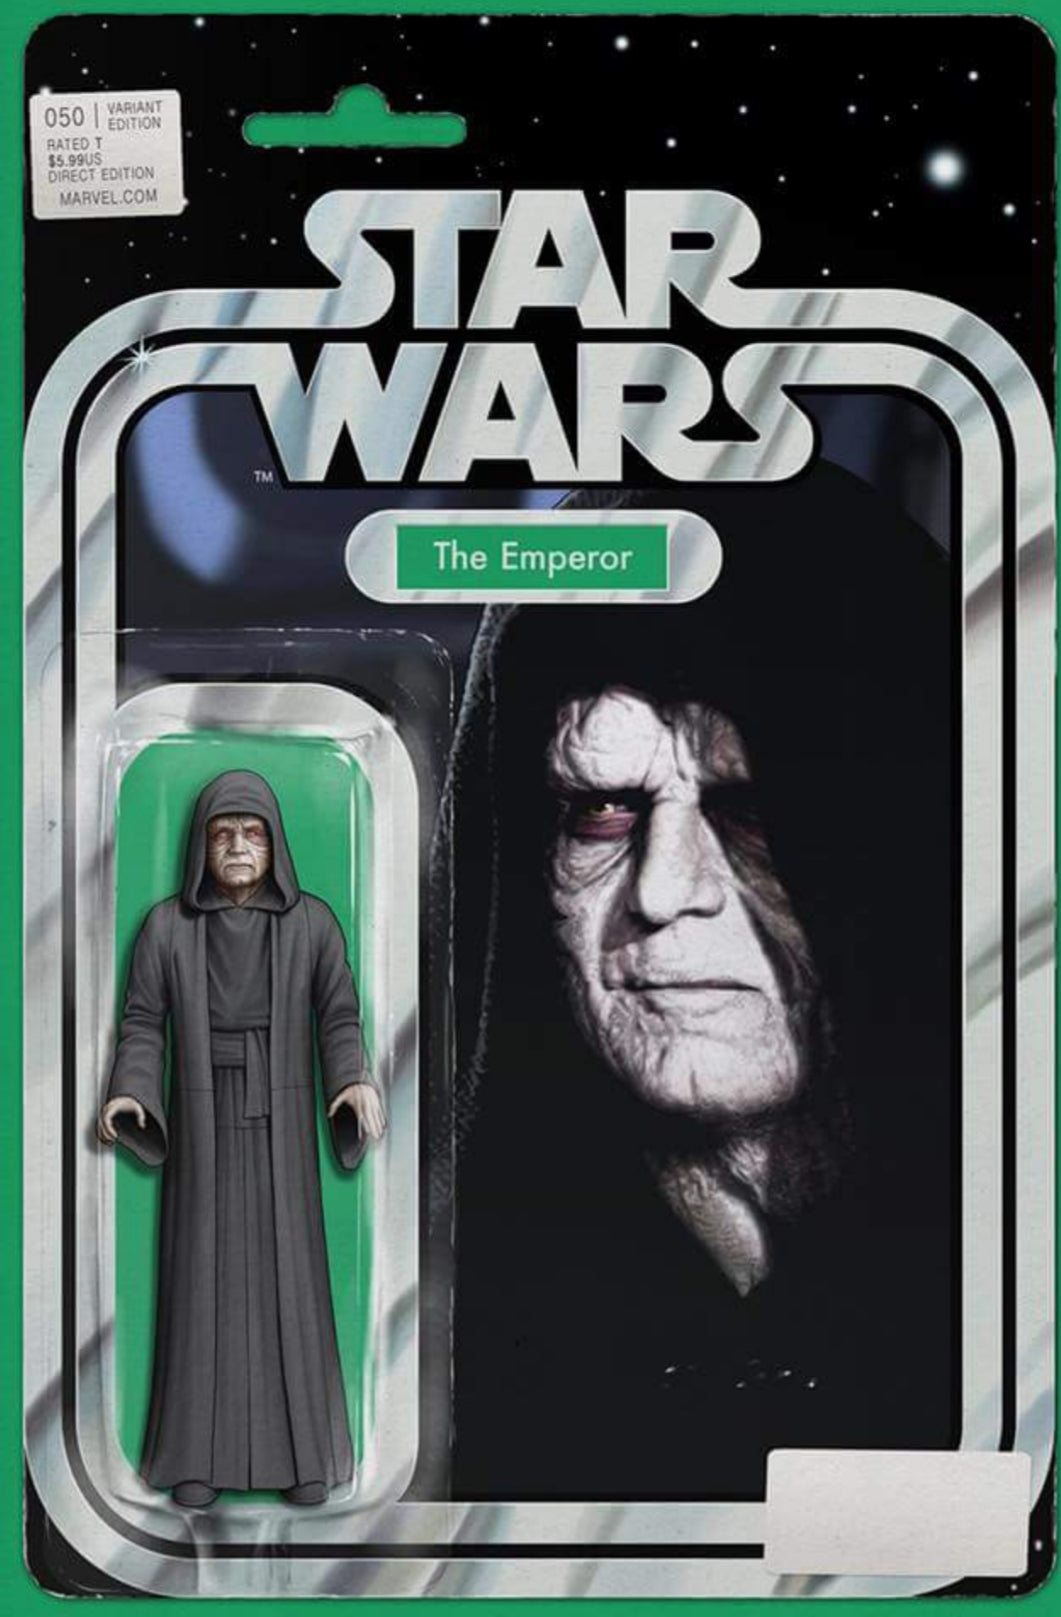 07/04/2018 STAR WARS #50 Action Figure Variant